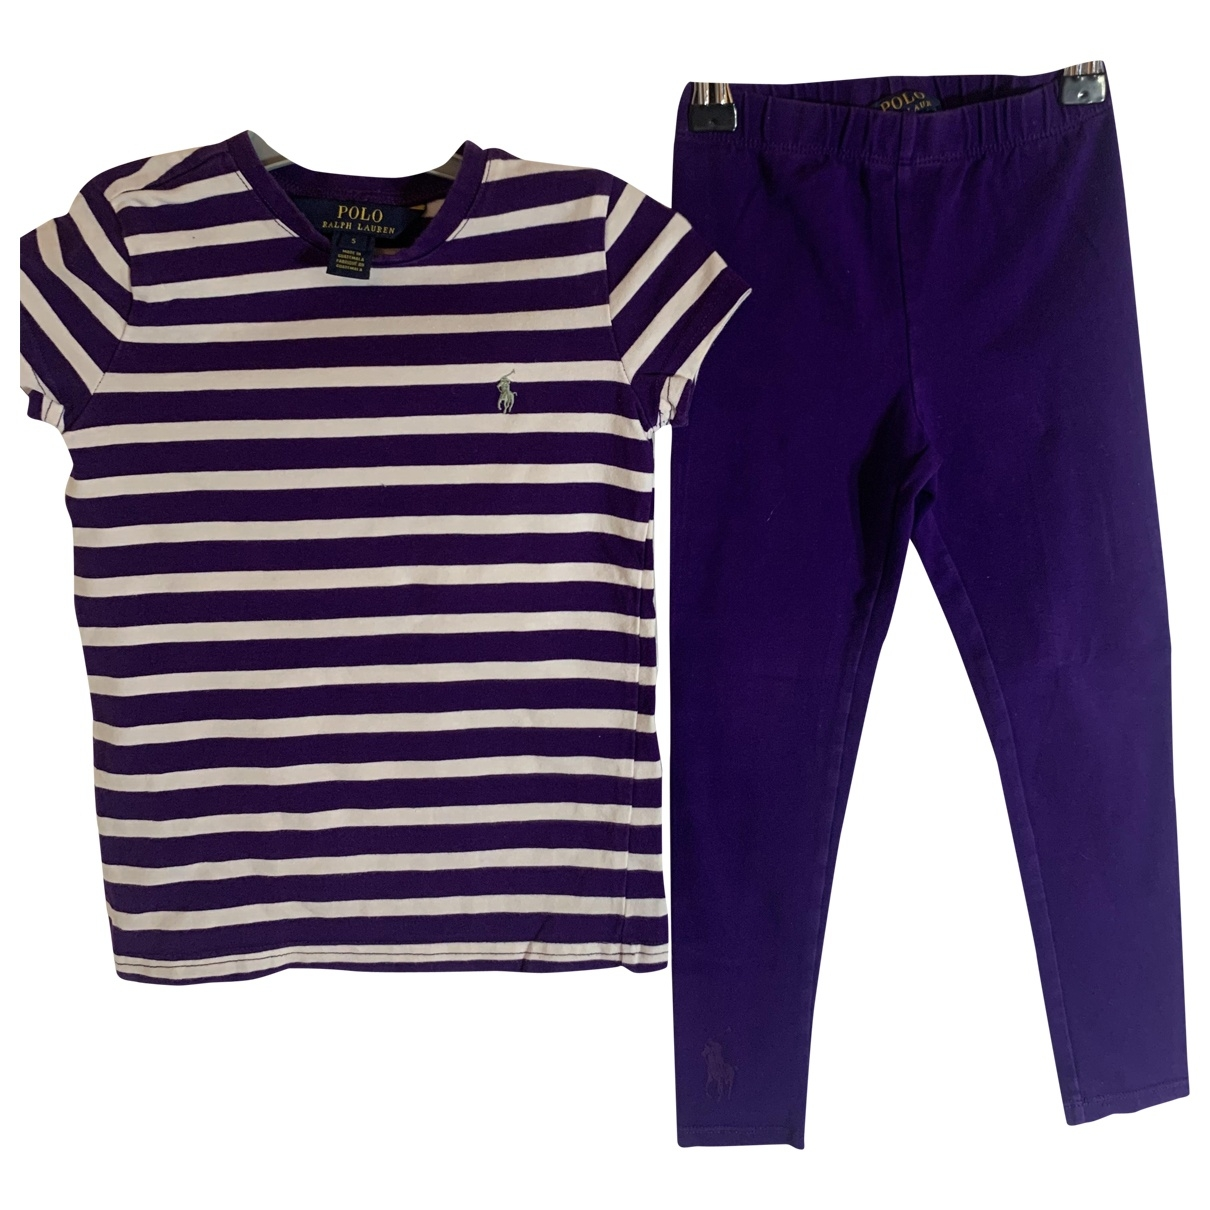 Polo Ralph Lauren \N Purple Cotton Outfits for Kids 5 years - up to 108cm FR